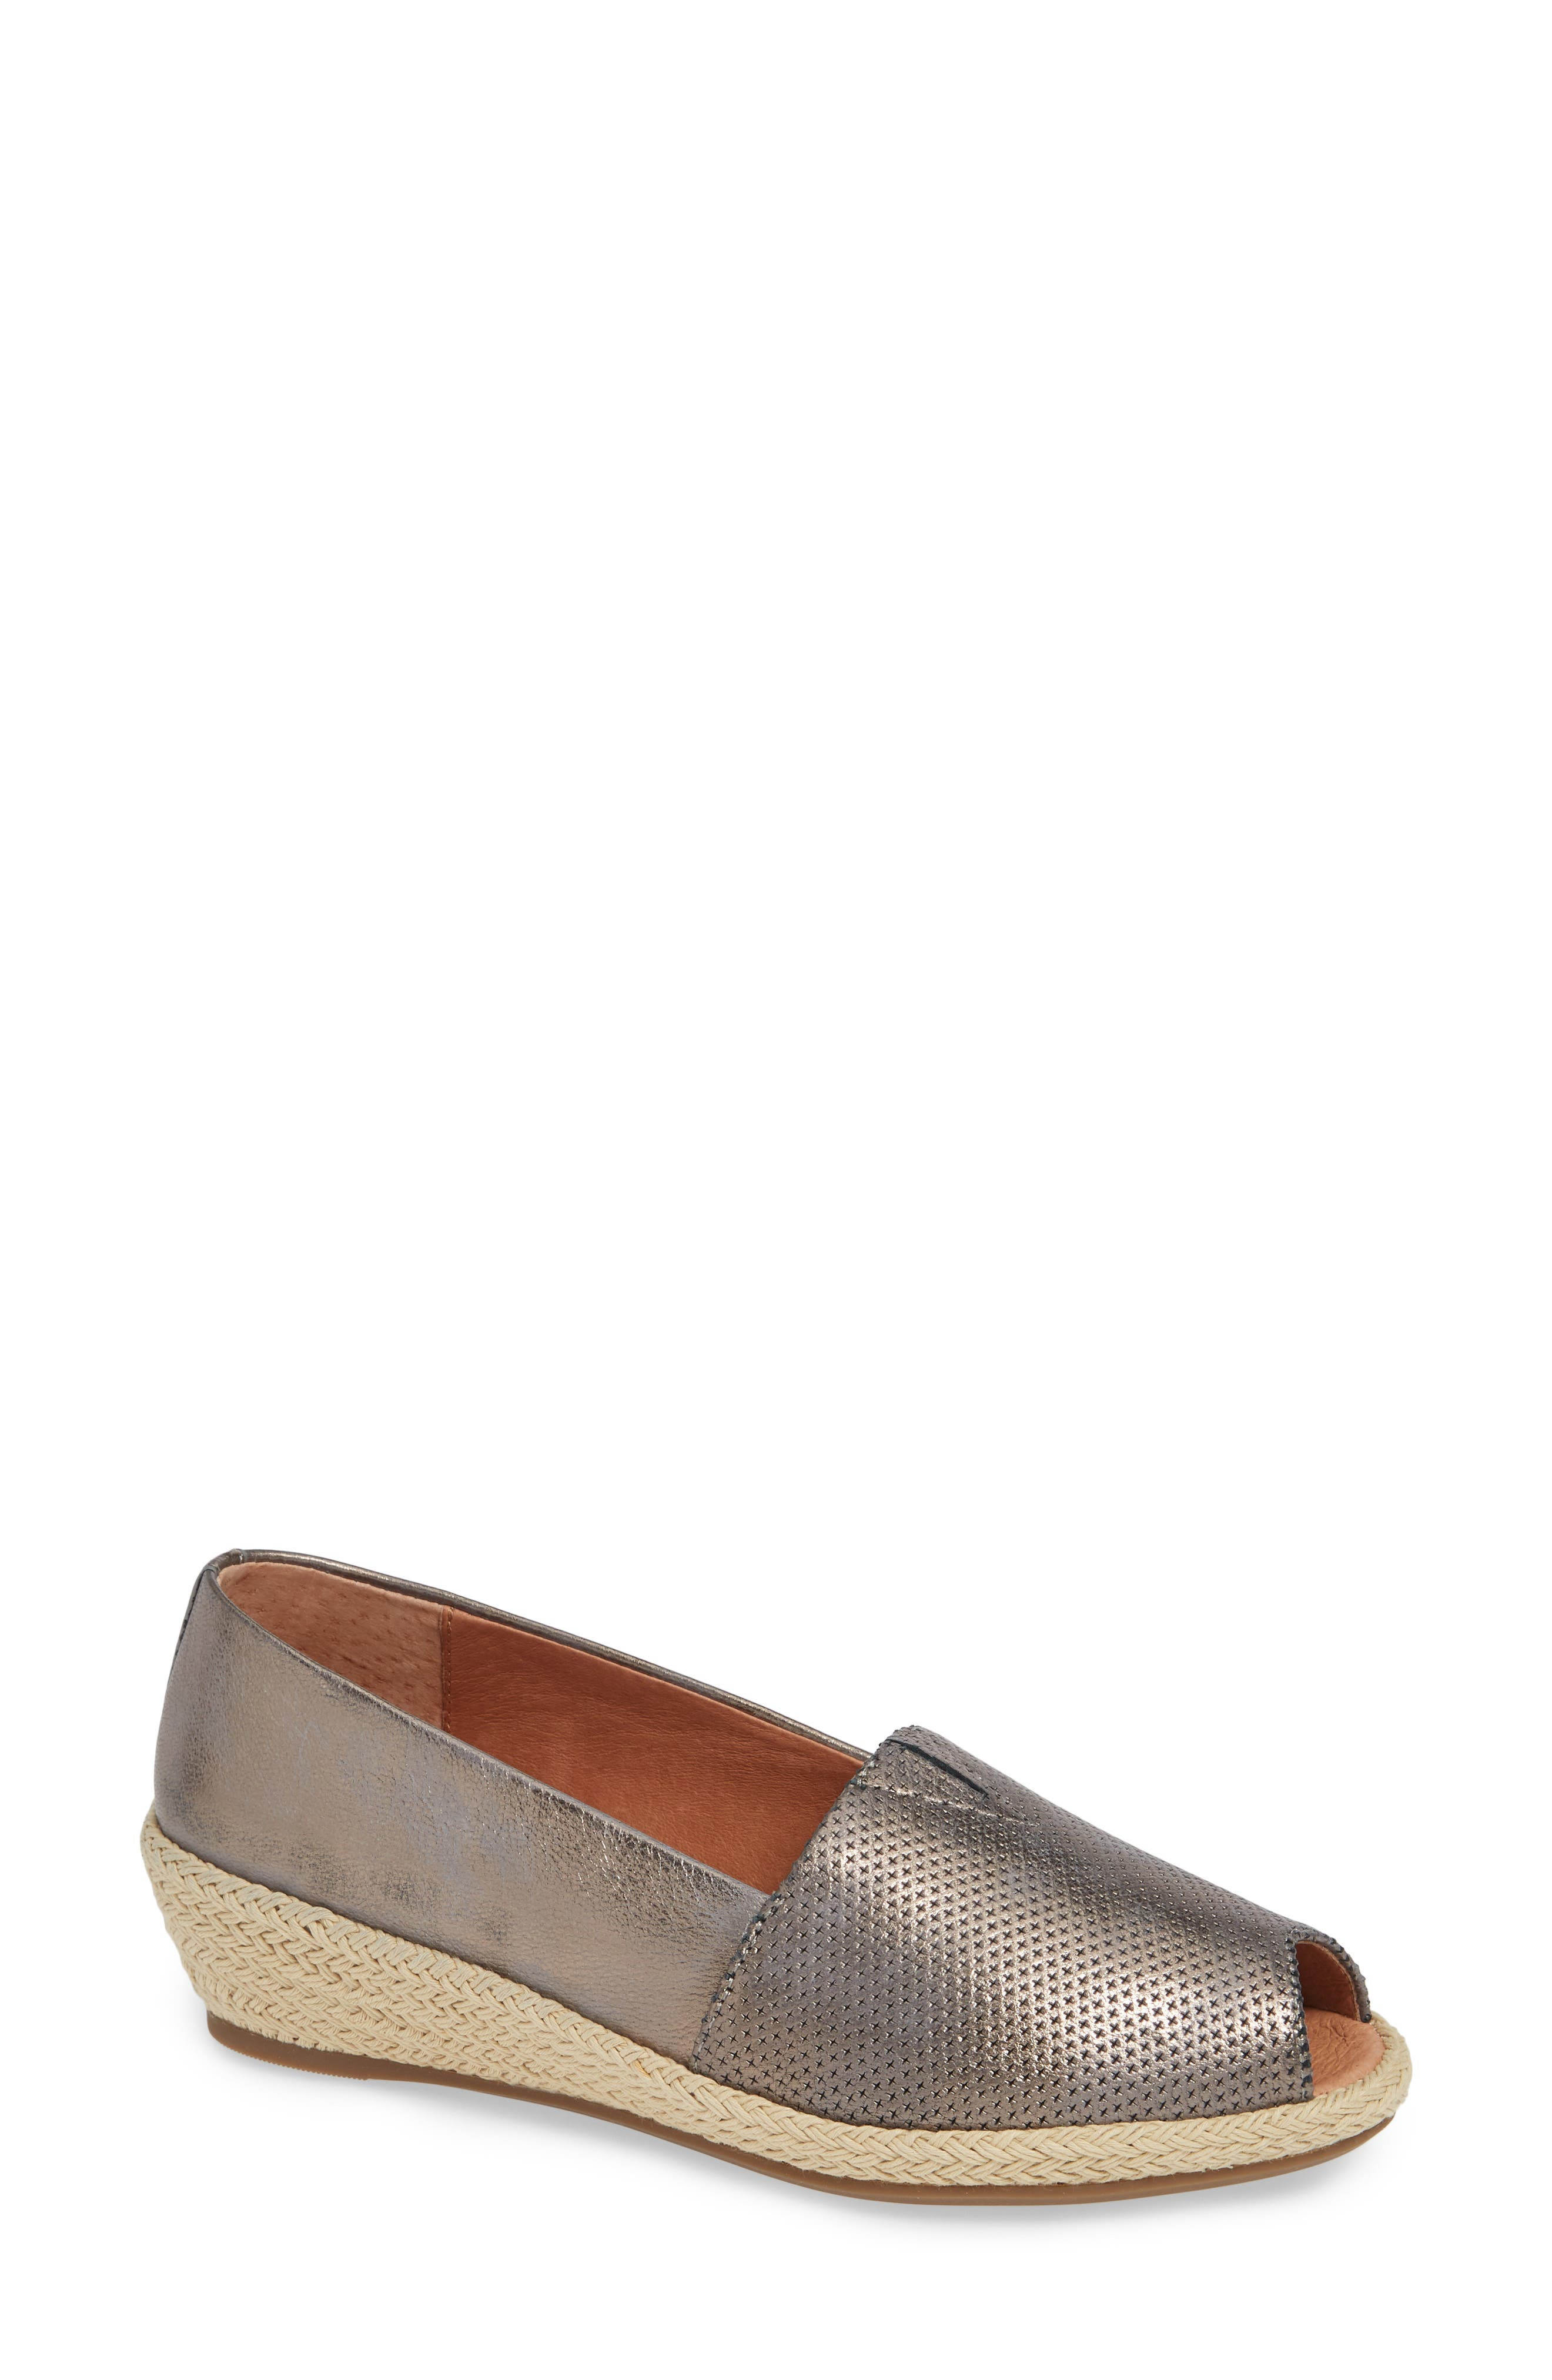 GENTLE SOULS BY KENNETH COLE, Luca Open Toe Wedge Espadrille, Main thumbnail 1, color, PEWTER METALLIC LEATHER